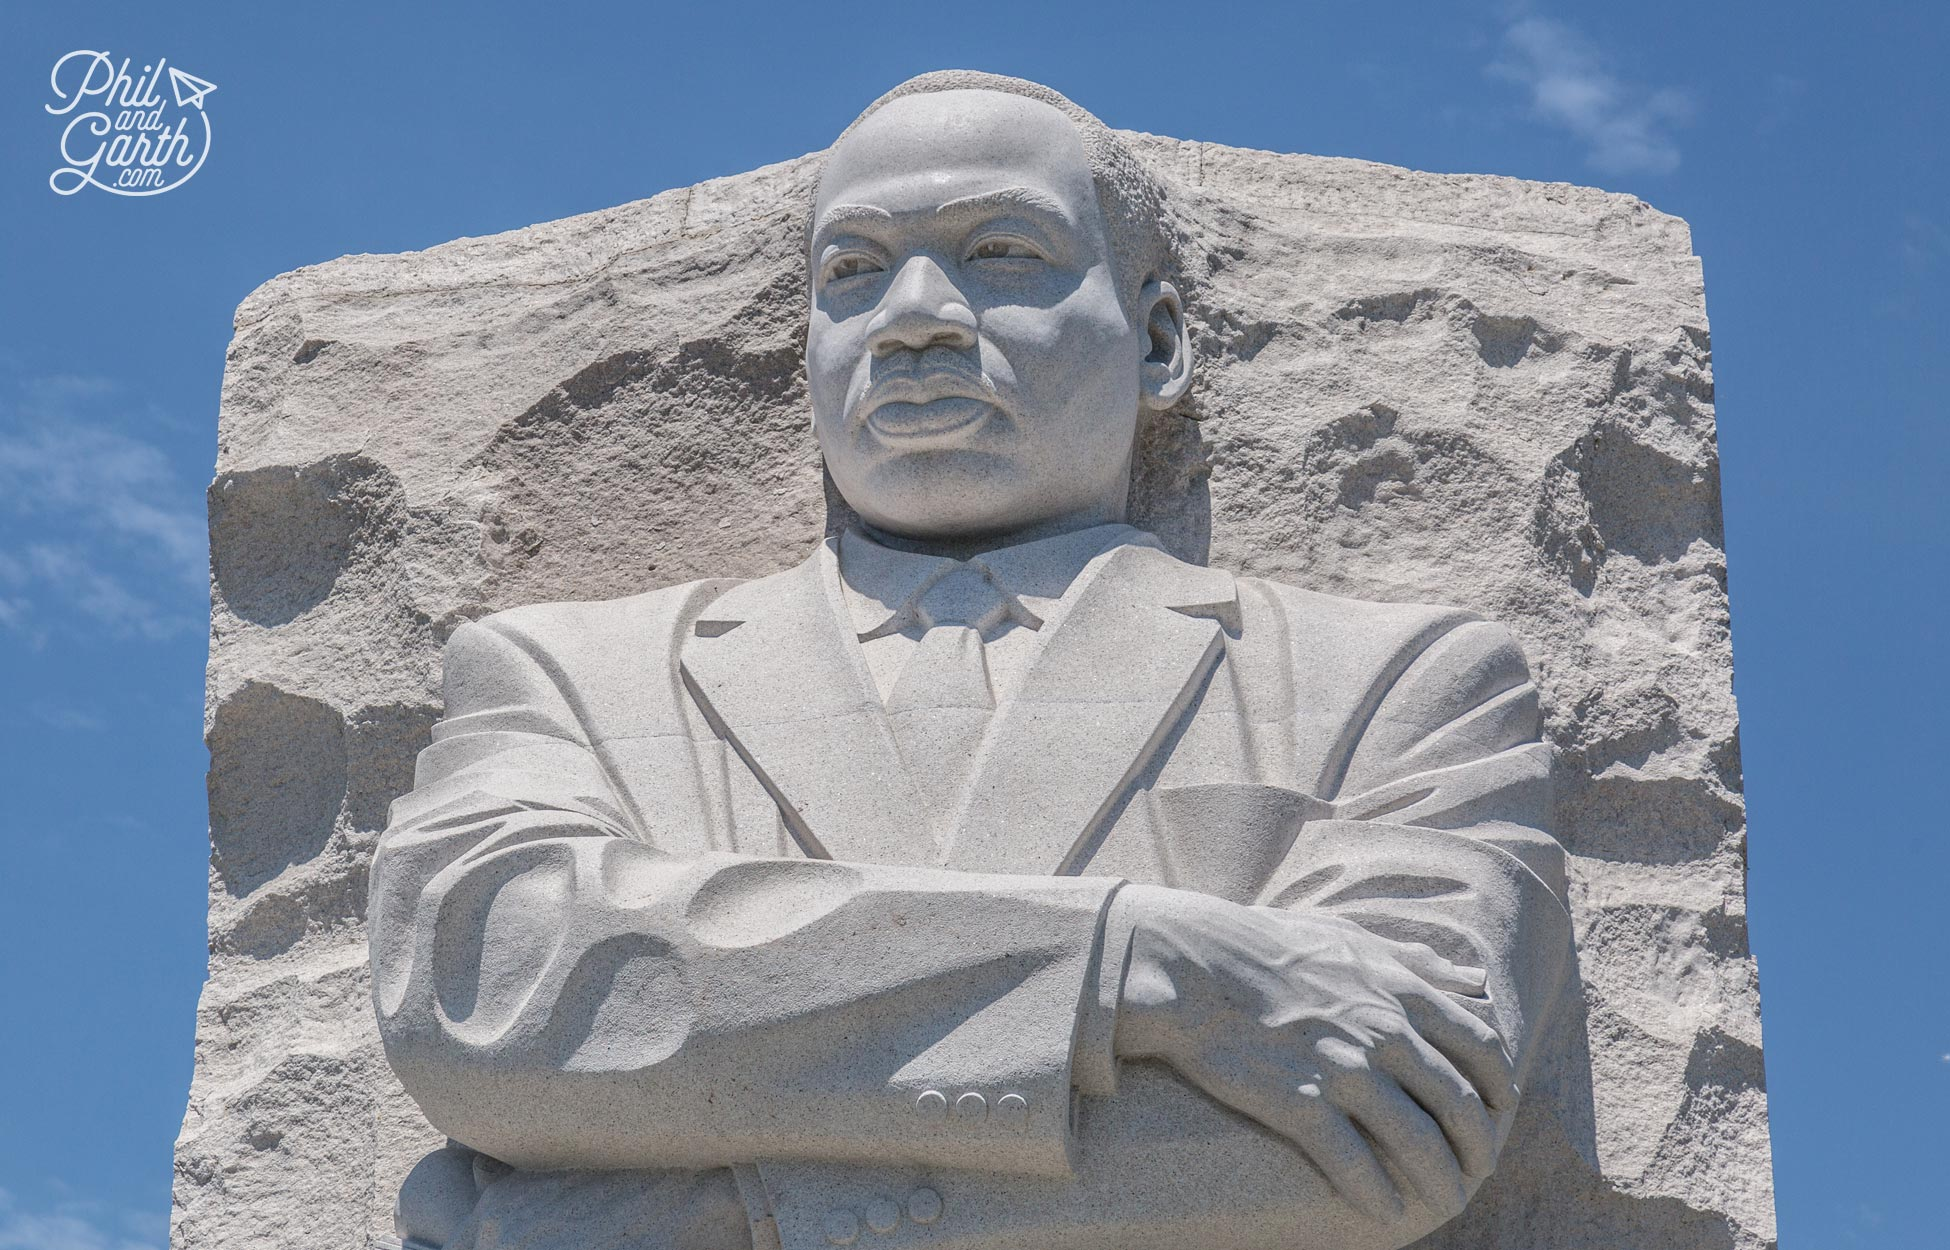 A stunning memorial to honour the world's greatest leader in civil rights